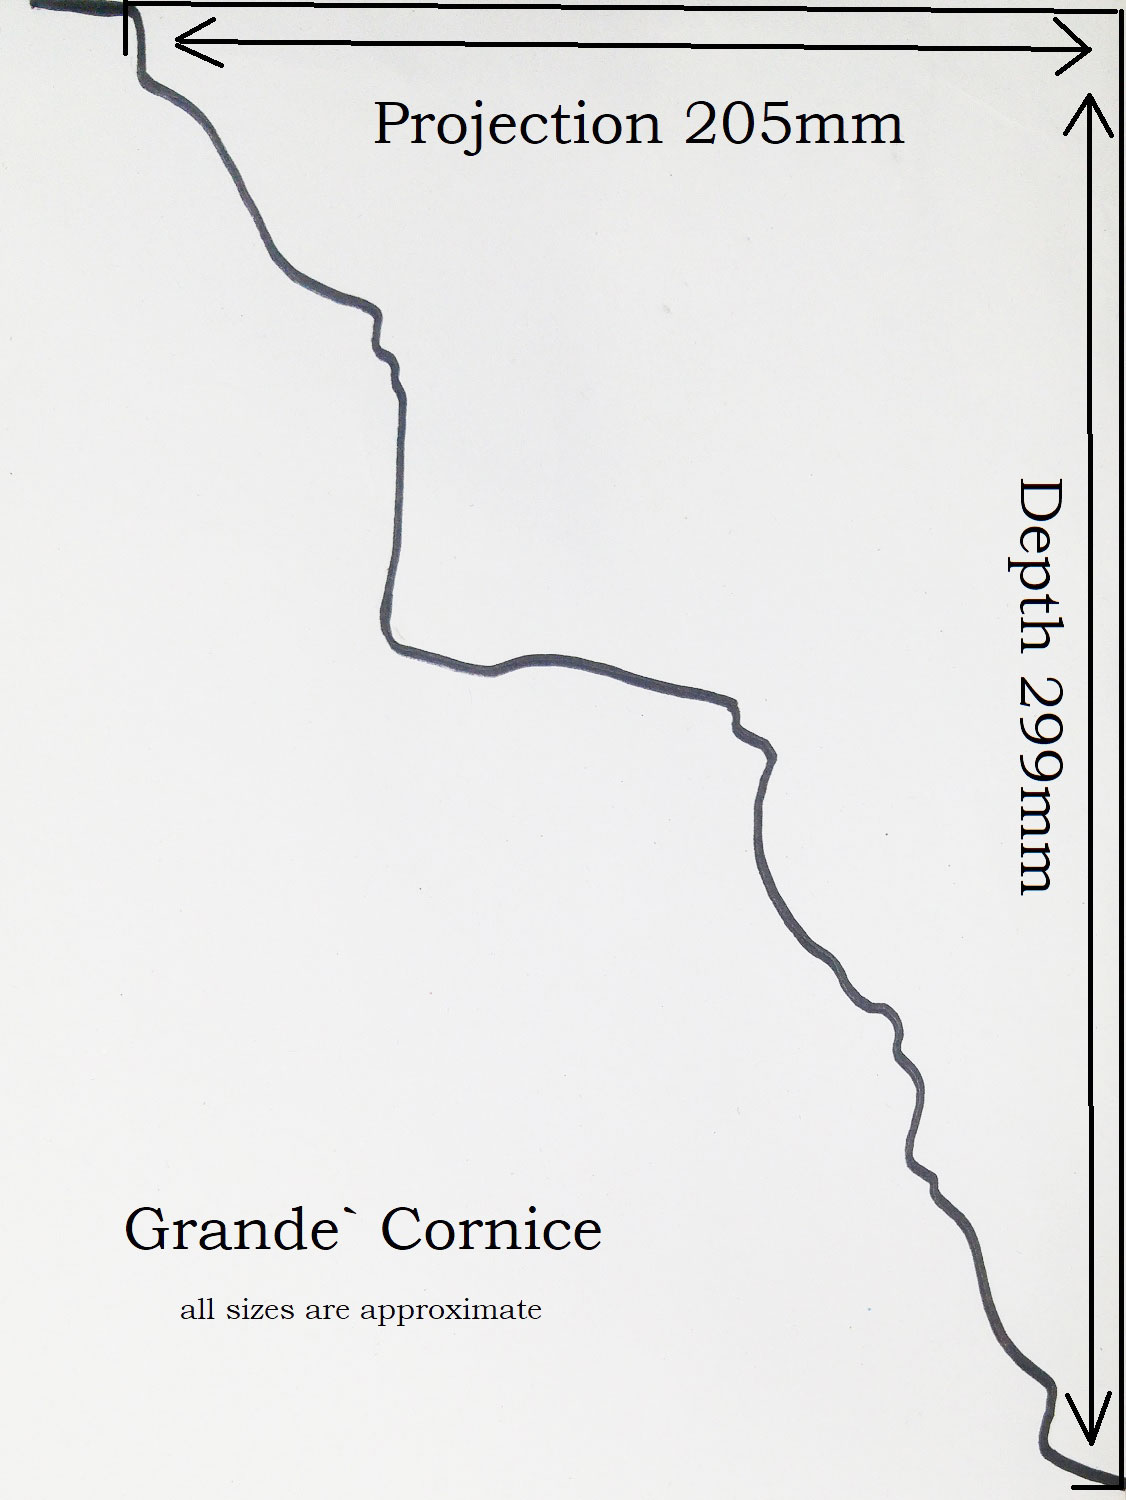 Grande Cornice profile measurements